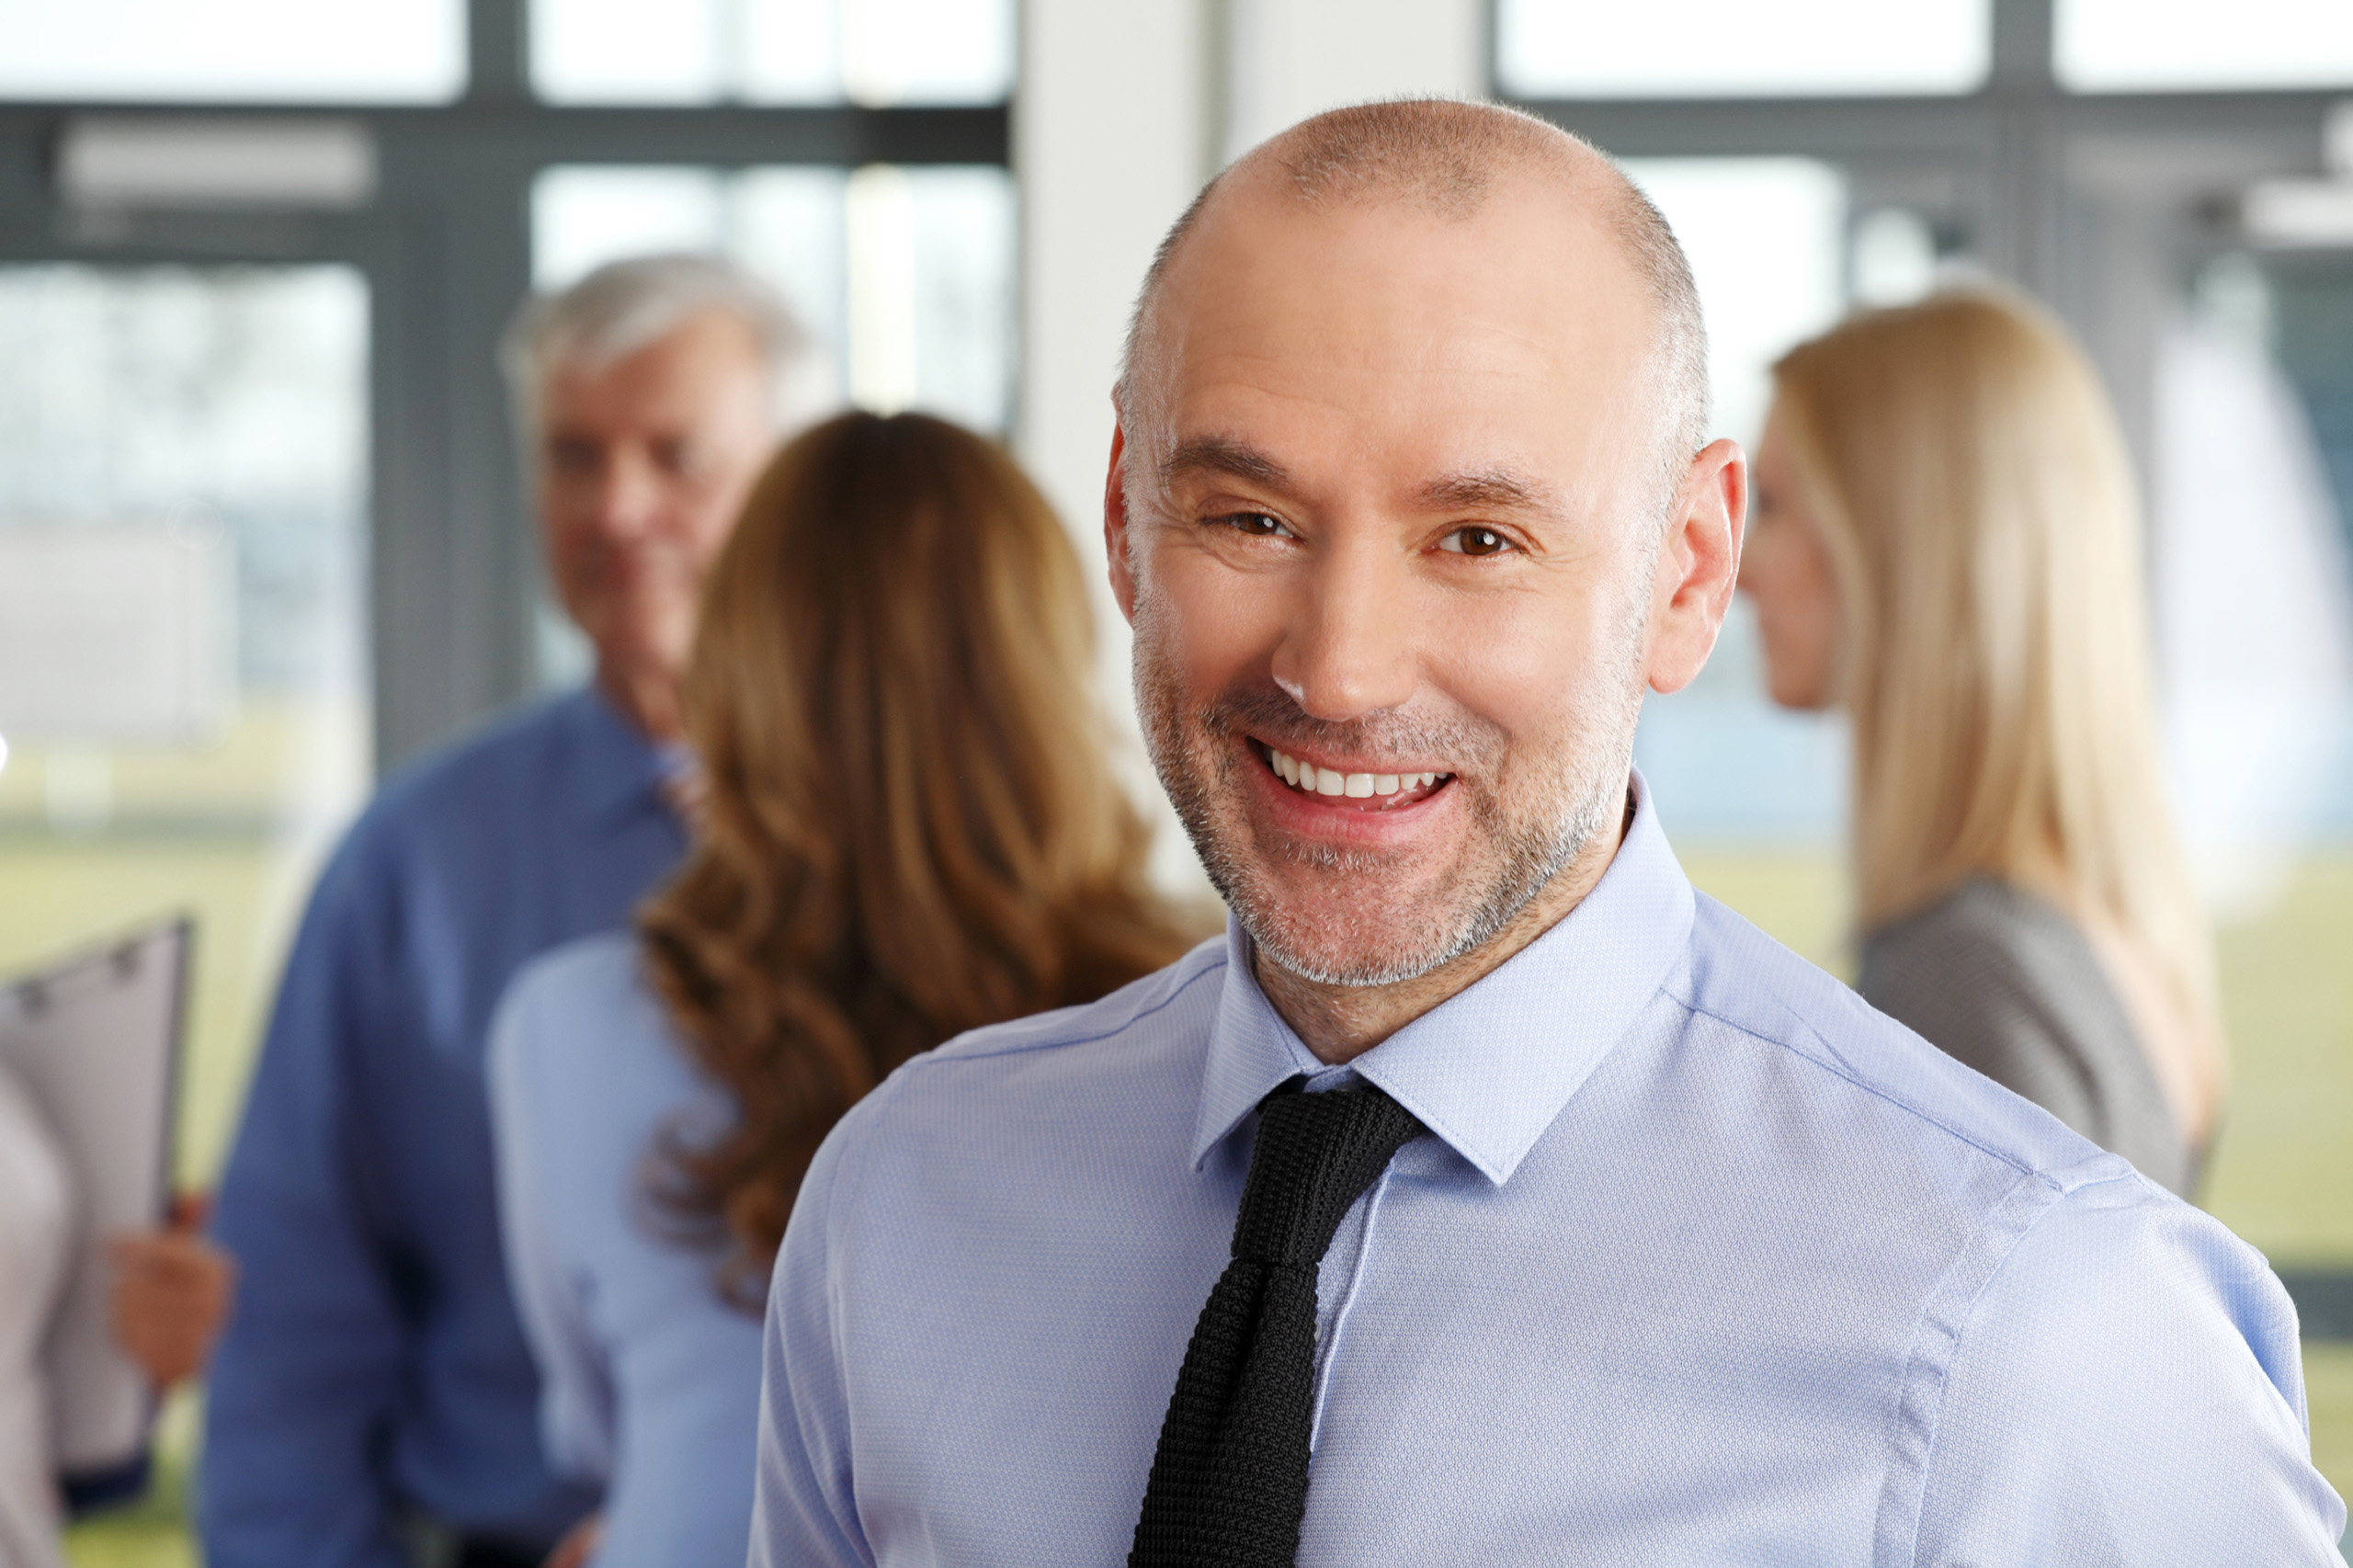 office worker smiling